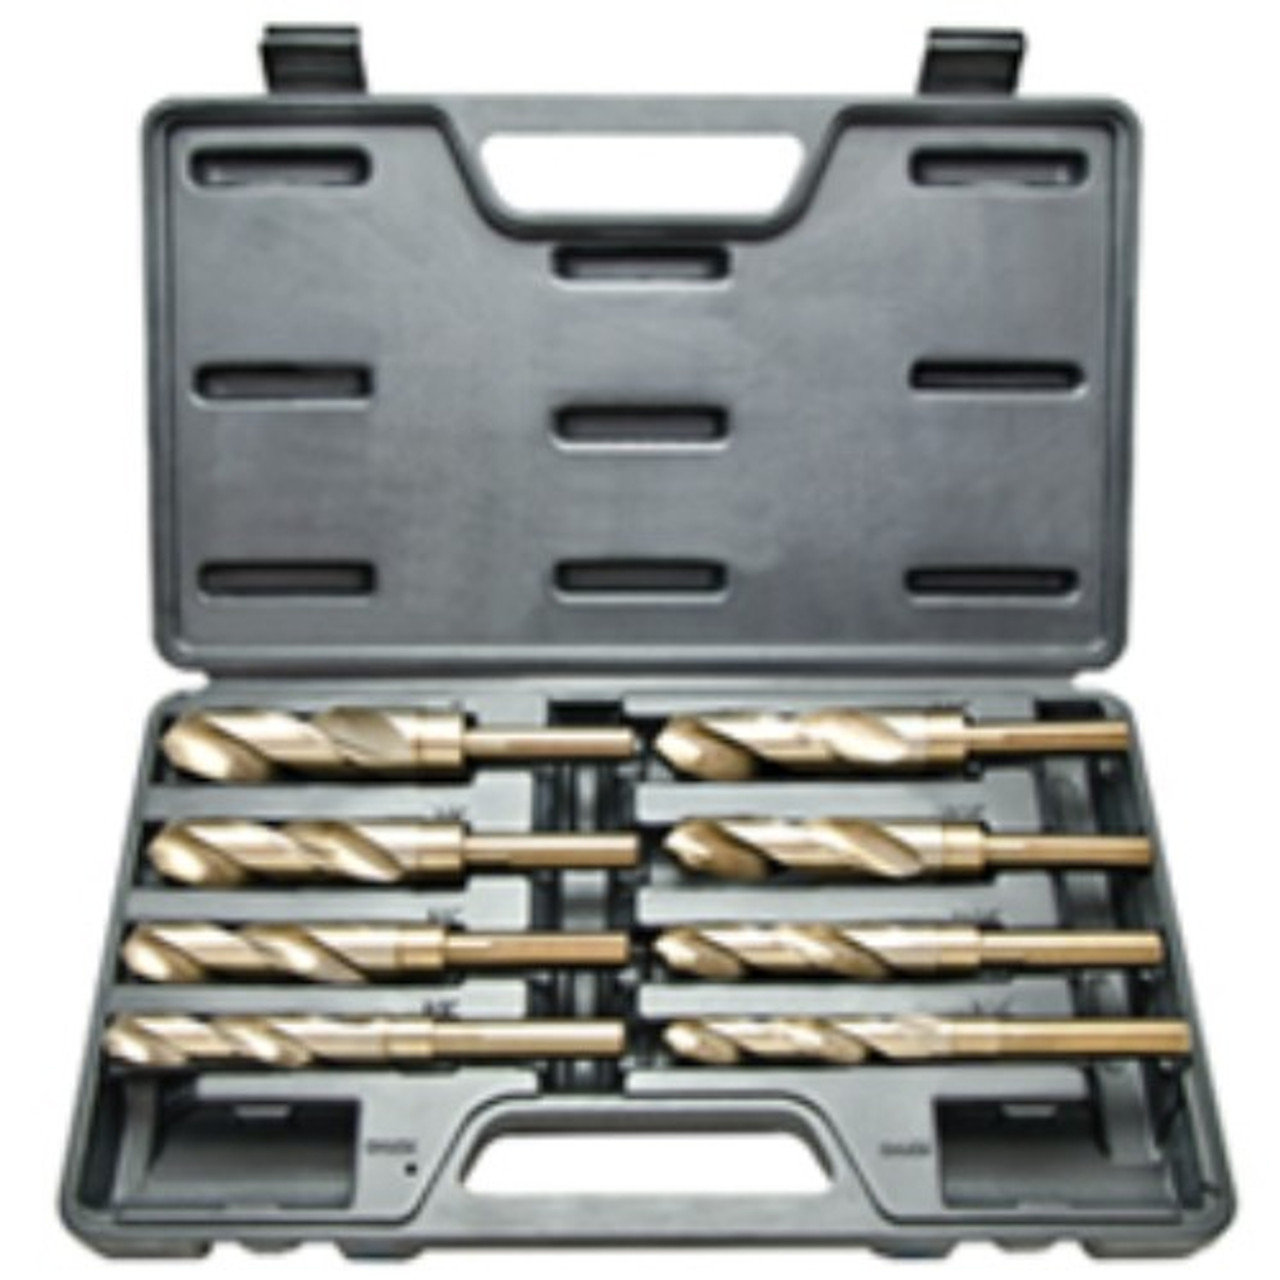 Reduced Shank Drill Bit Set Silver /& Deming 9//16-1 8-pc